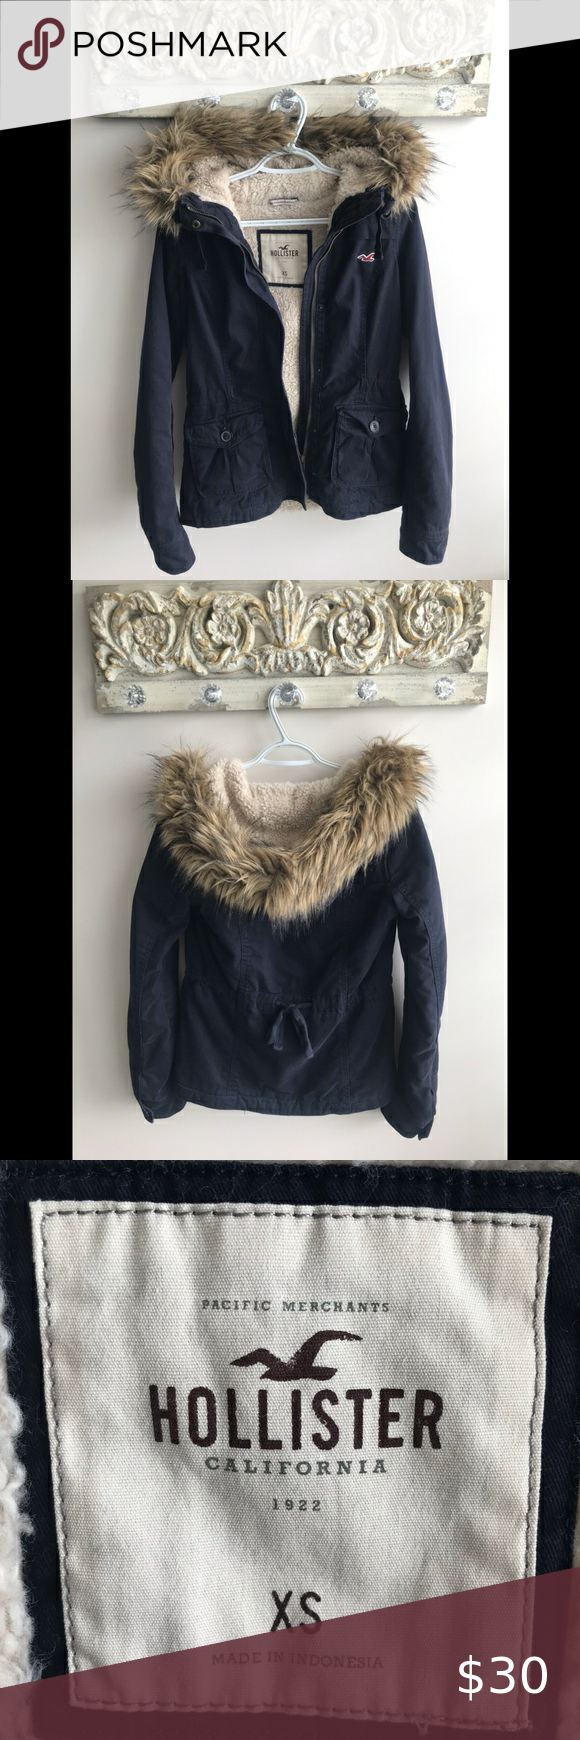 Hollister Winter Jacket In Excellent Condition Only Worn Once Hollister Jackets Coats Jackets Winter Jackets Hollister Jackets [ 1740 x 580 Pixel ]